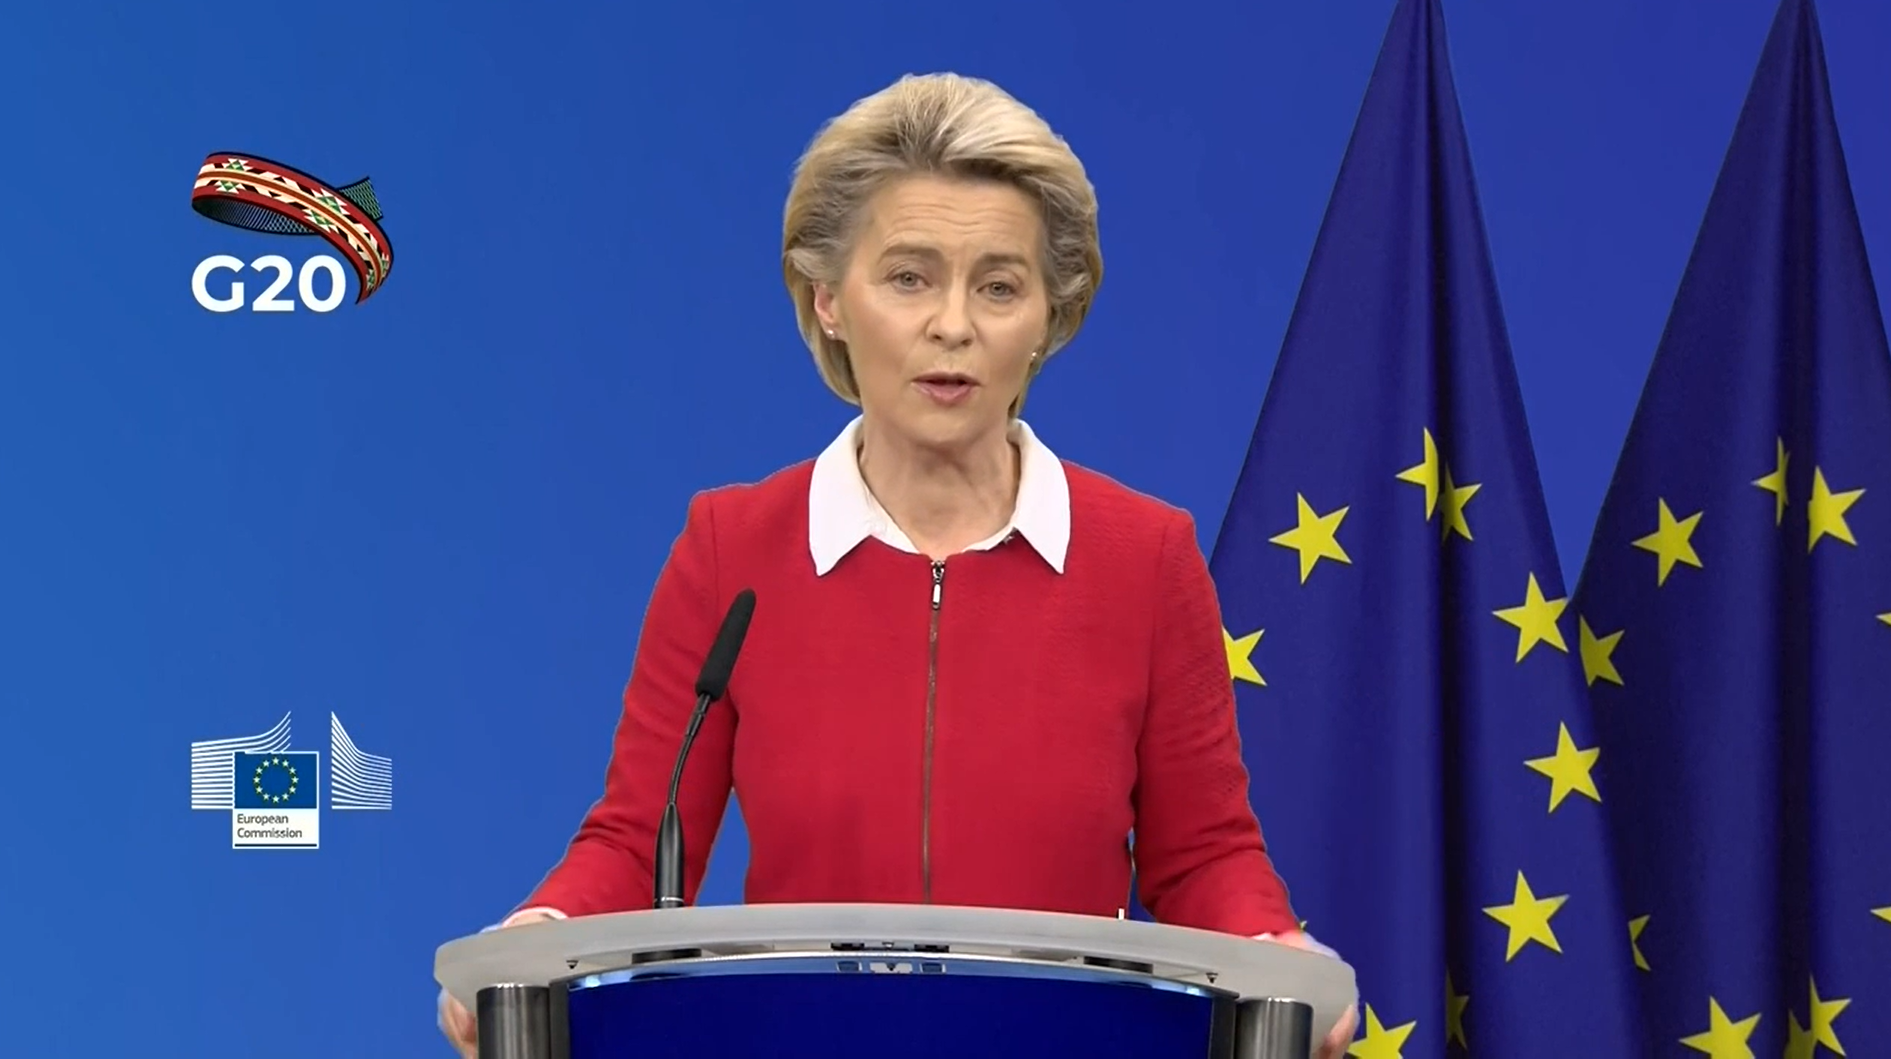 Ursula von der Leyen at the G20 Press Briefing on November 20, 2020. (Screengrab)